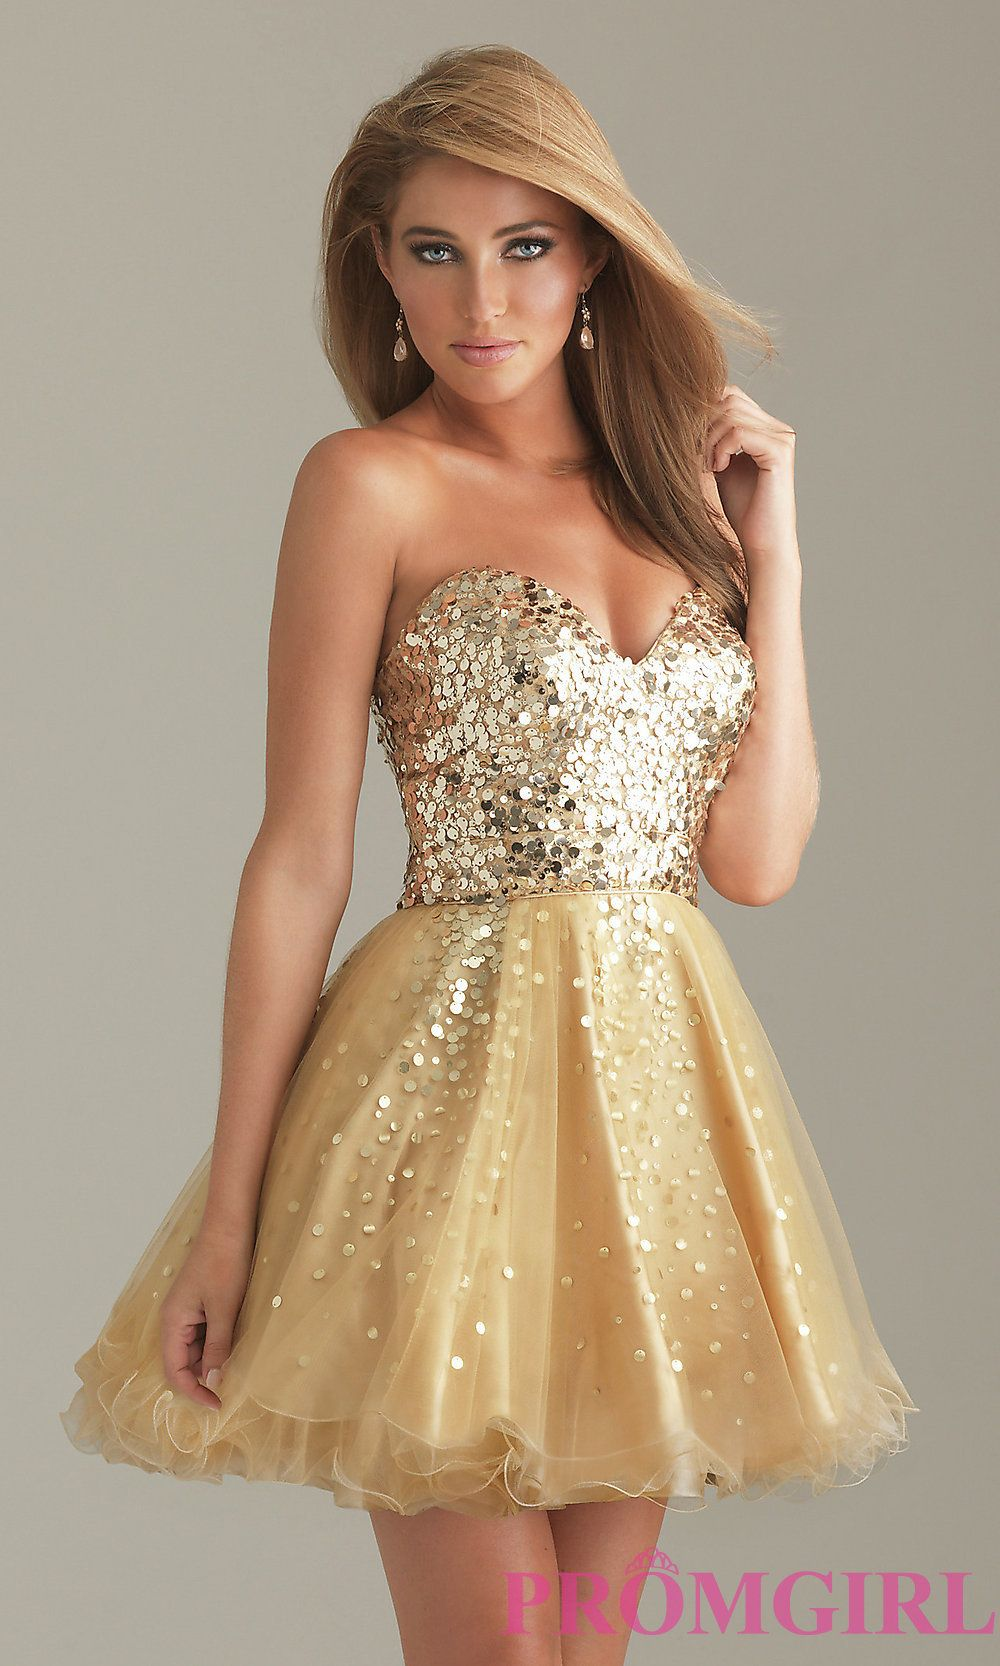 Short Gold Prom Dresses From PromGirl